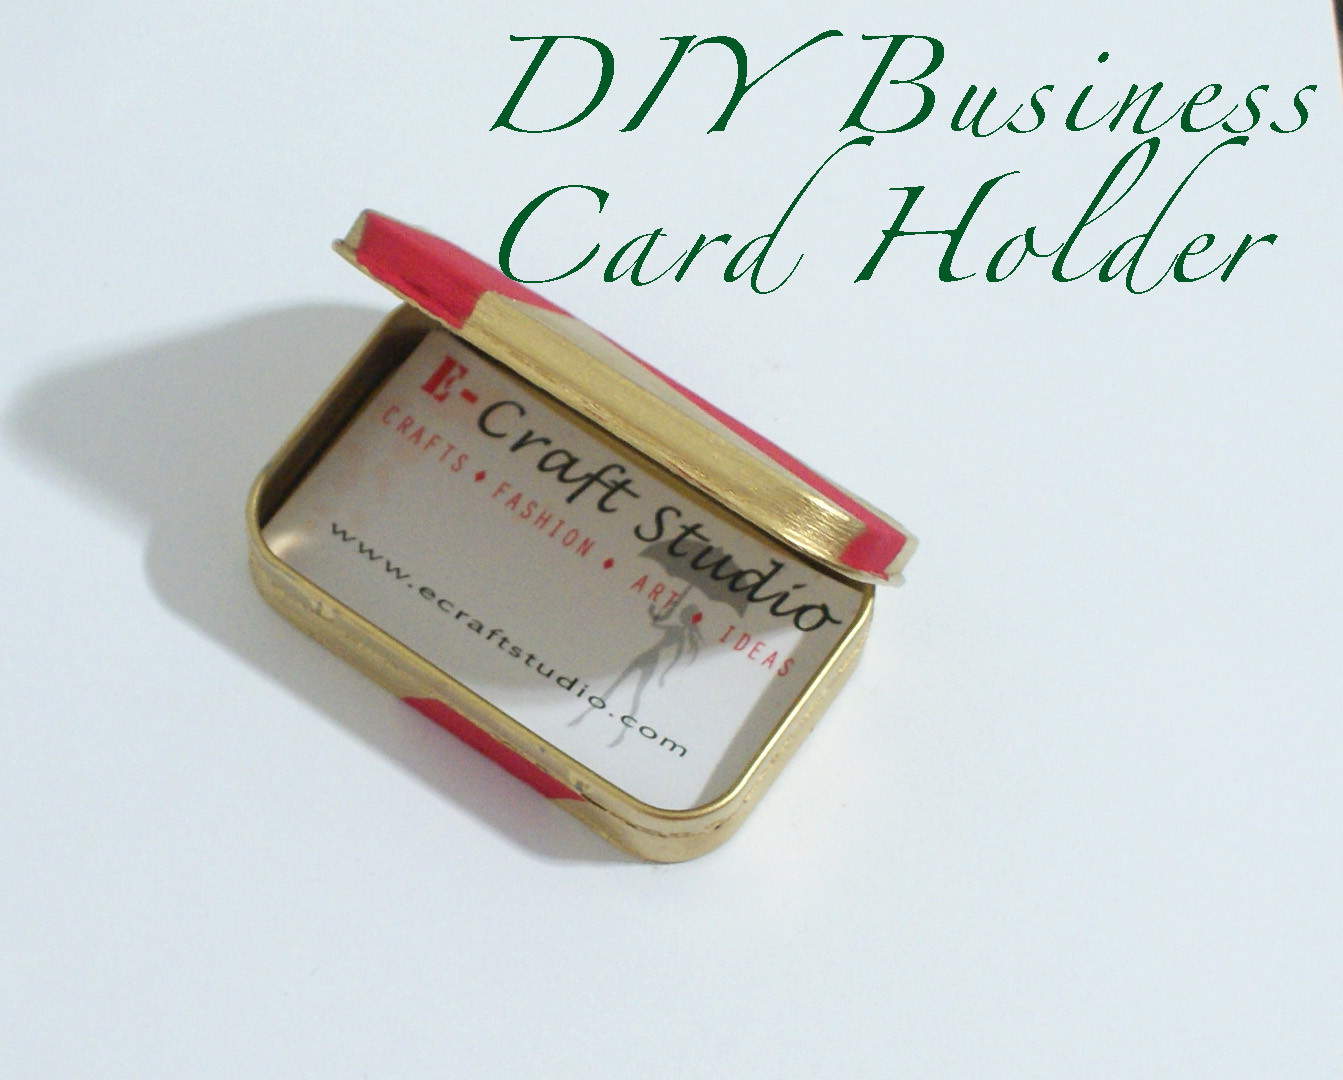 Best ideas about DIY Business Card Holders . Save or Pin DIY Business Card Holder Now.